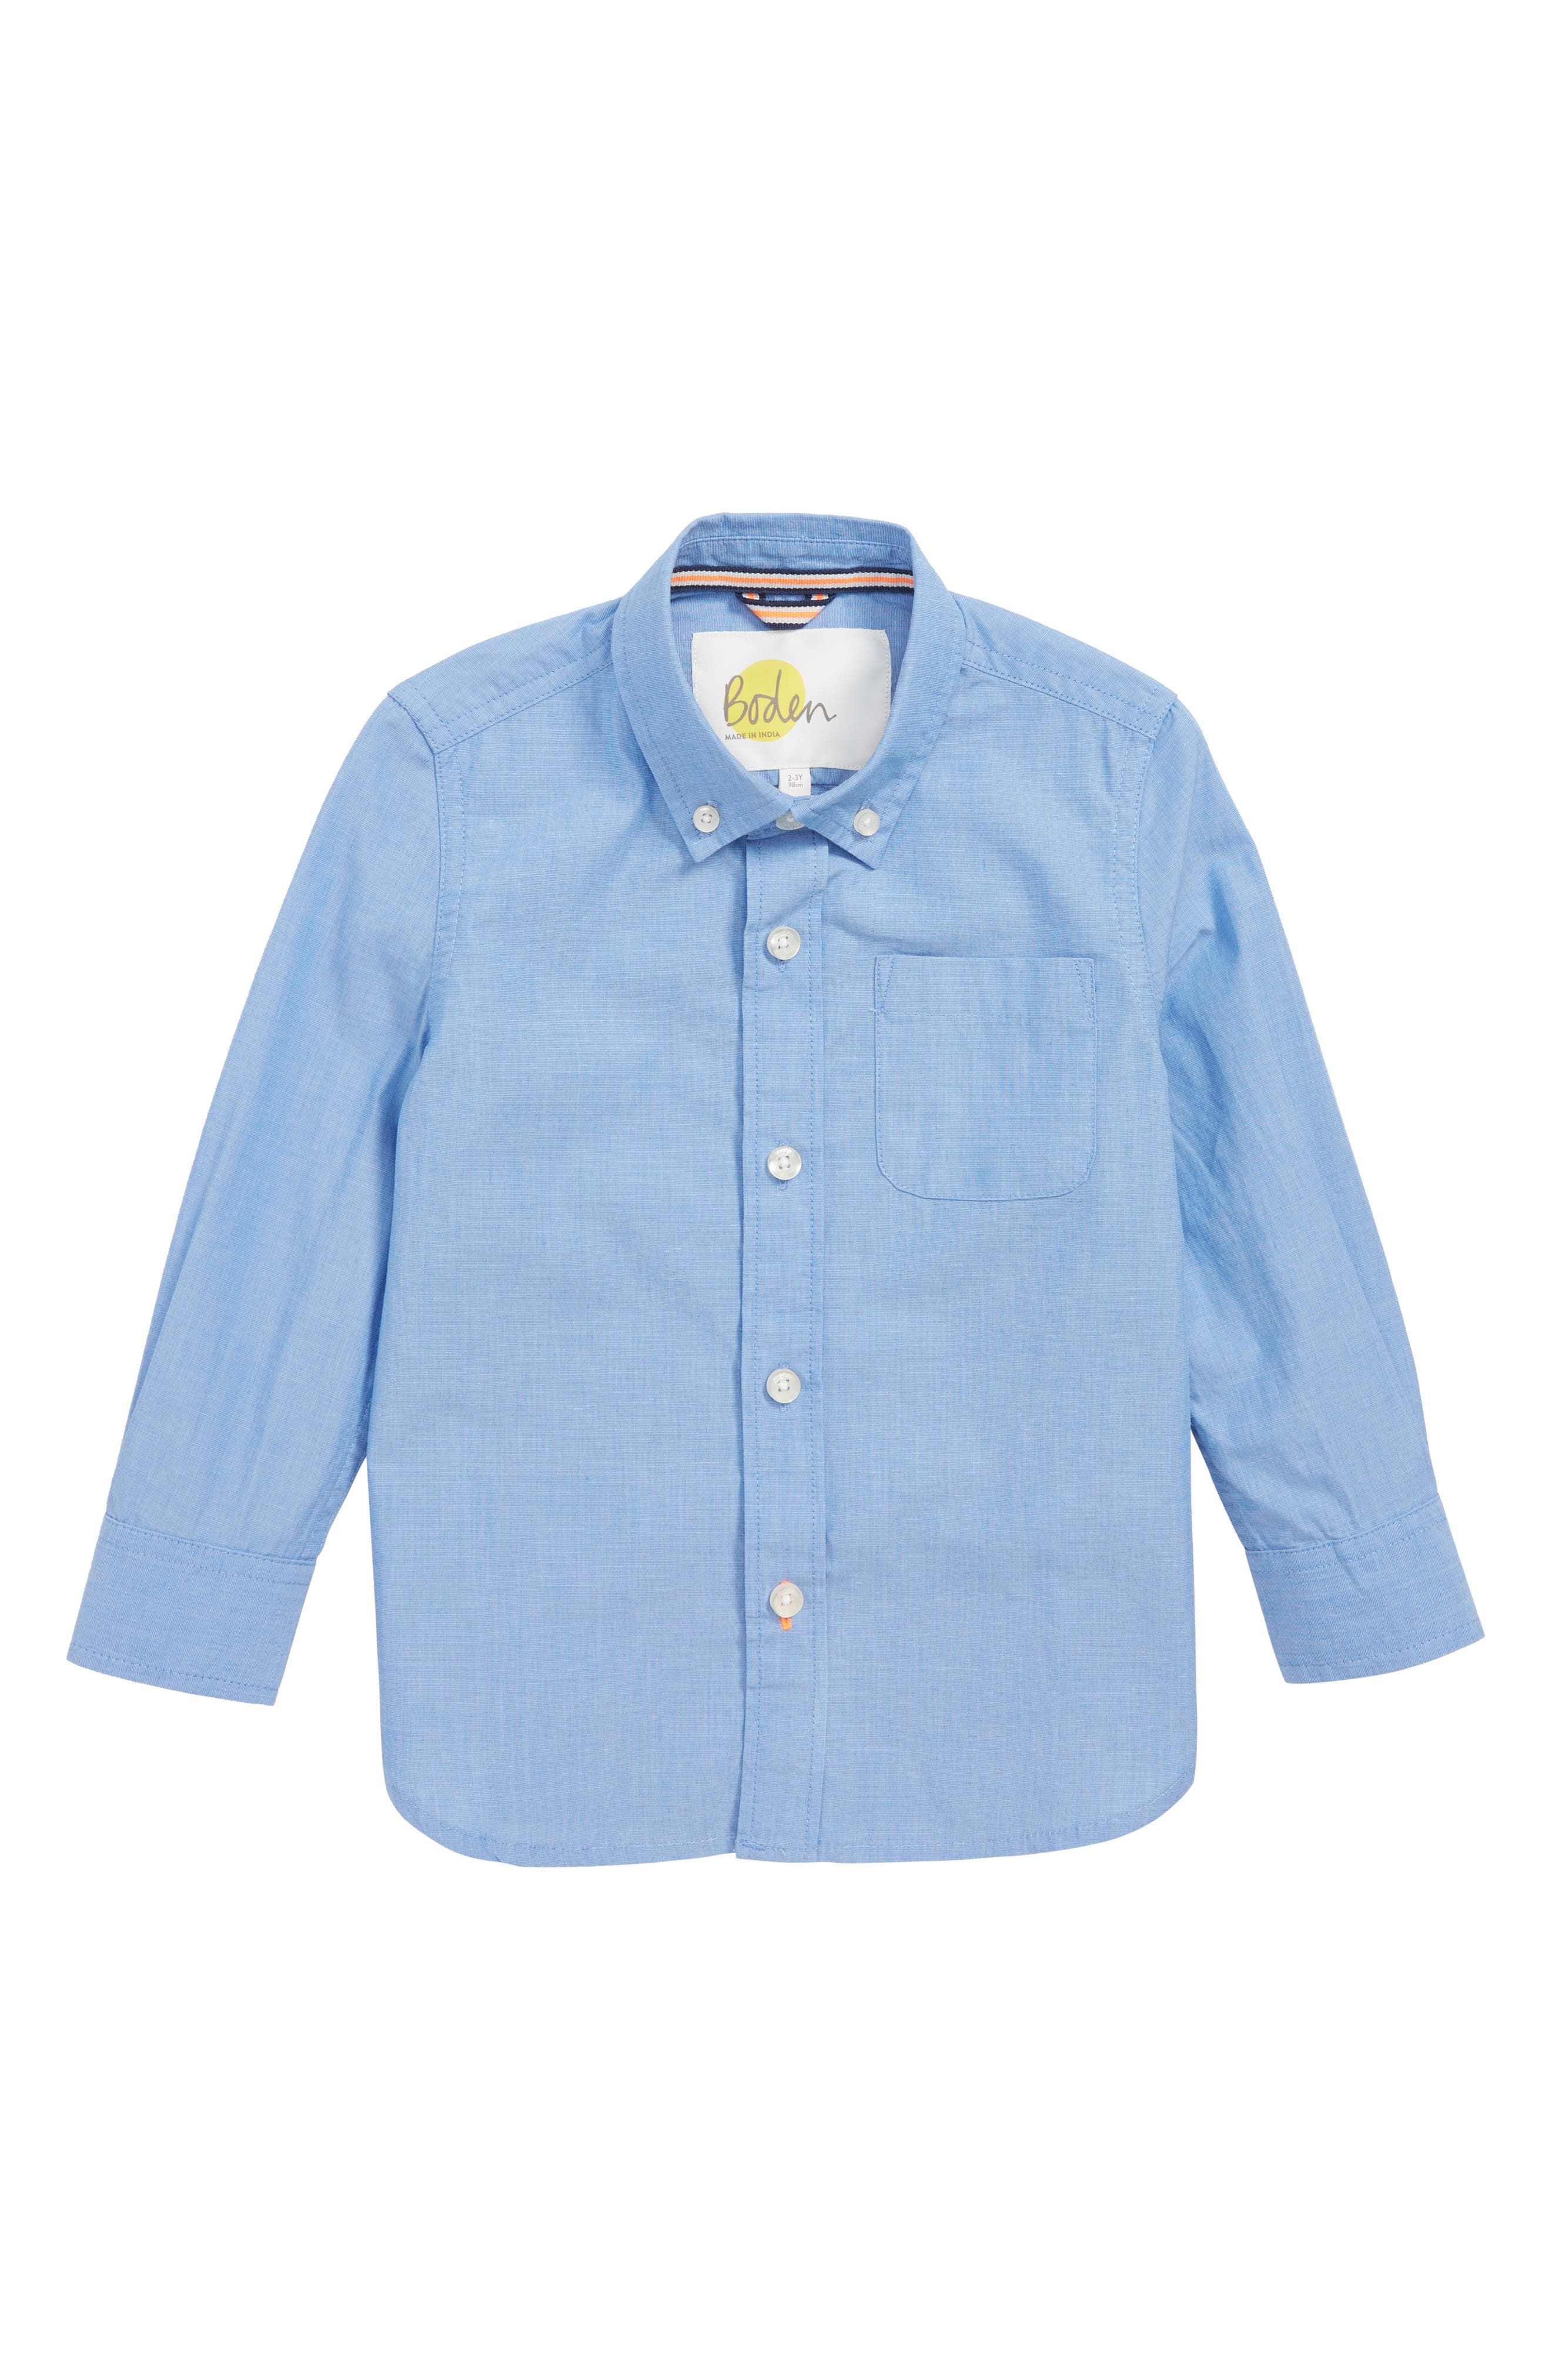 Smart Woven Shirt,                             Main thumbnail 1, color,                             WAVE BLUE